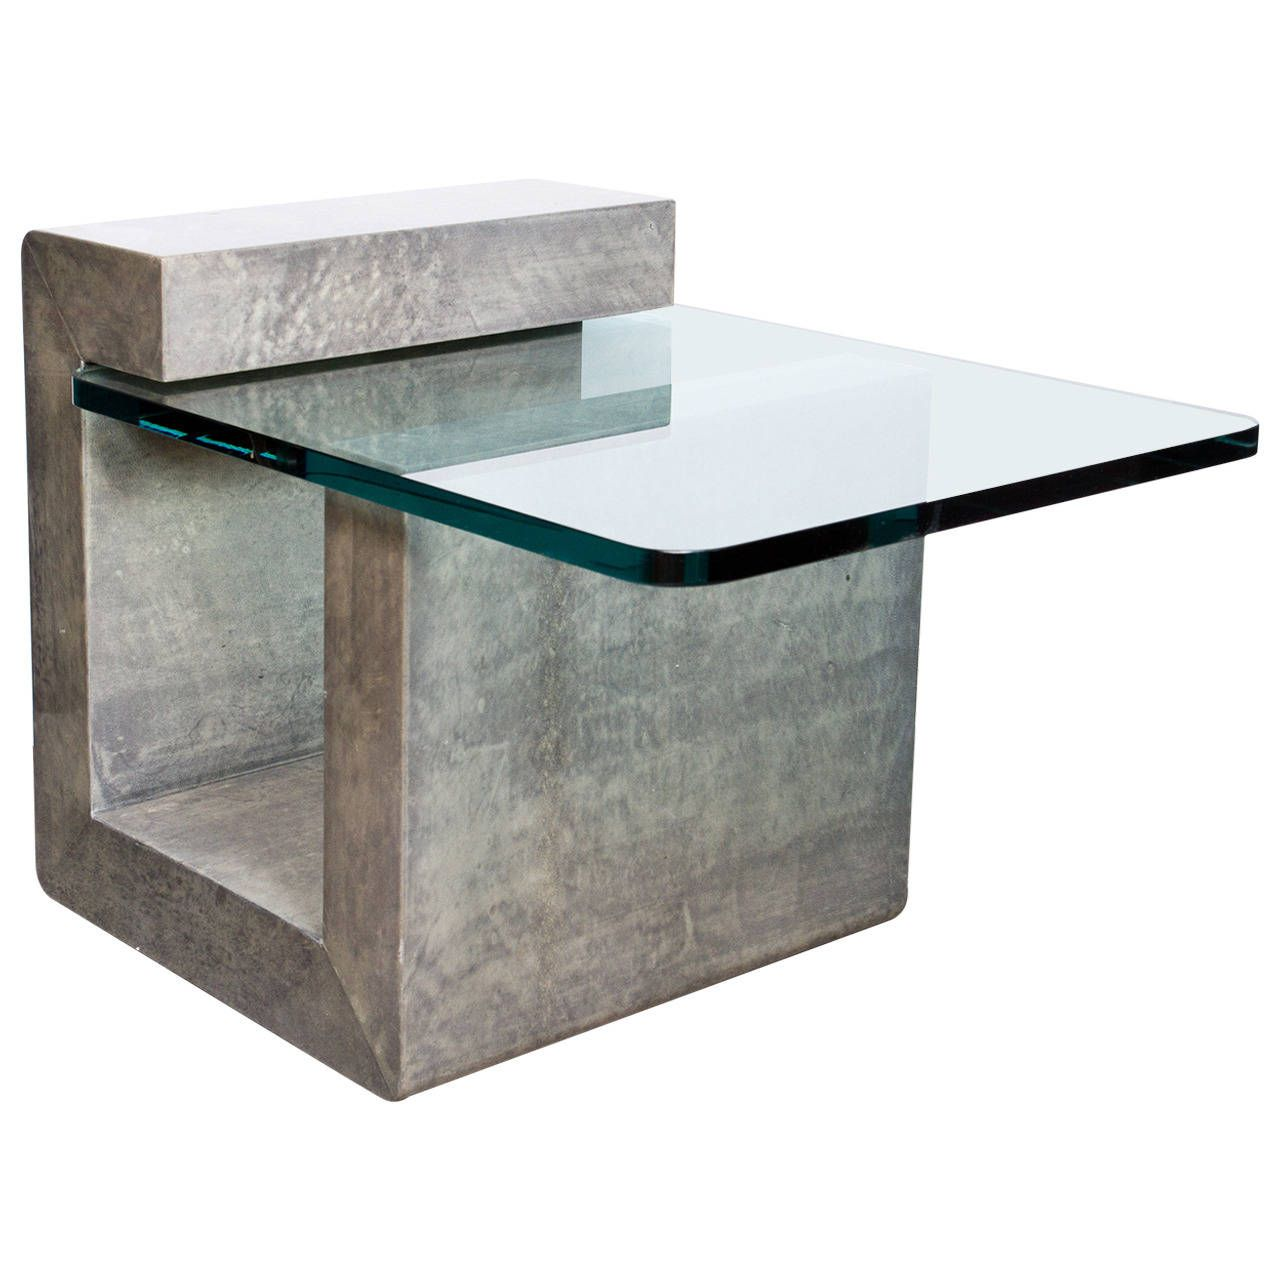 Modernist lacquered parchment side table tables unique Modern side table